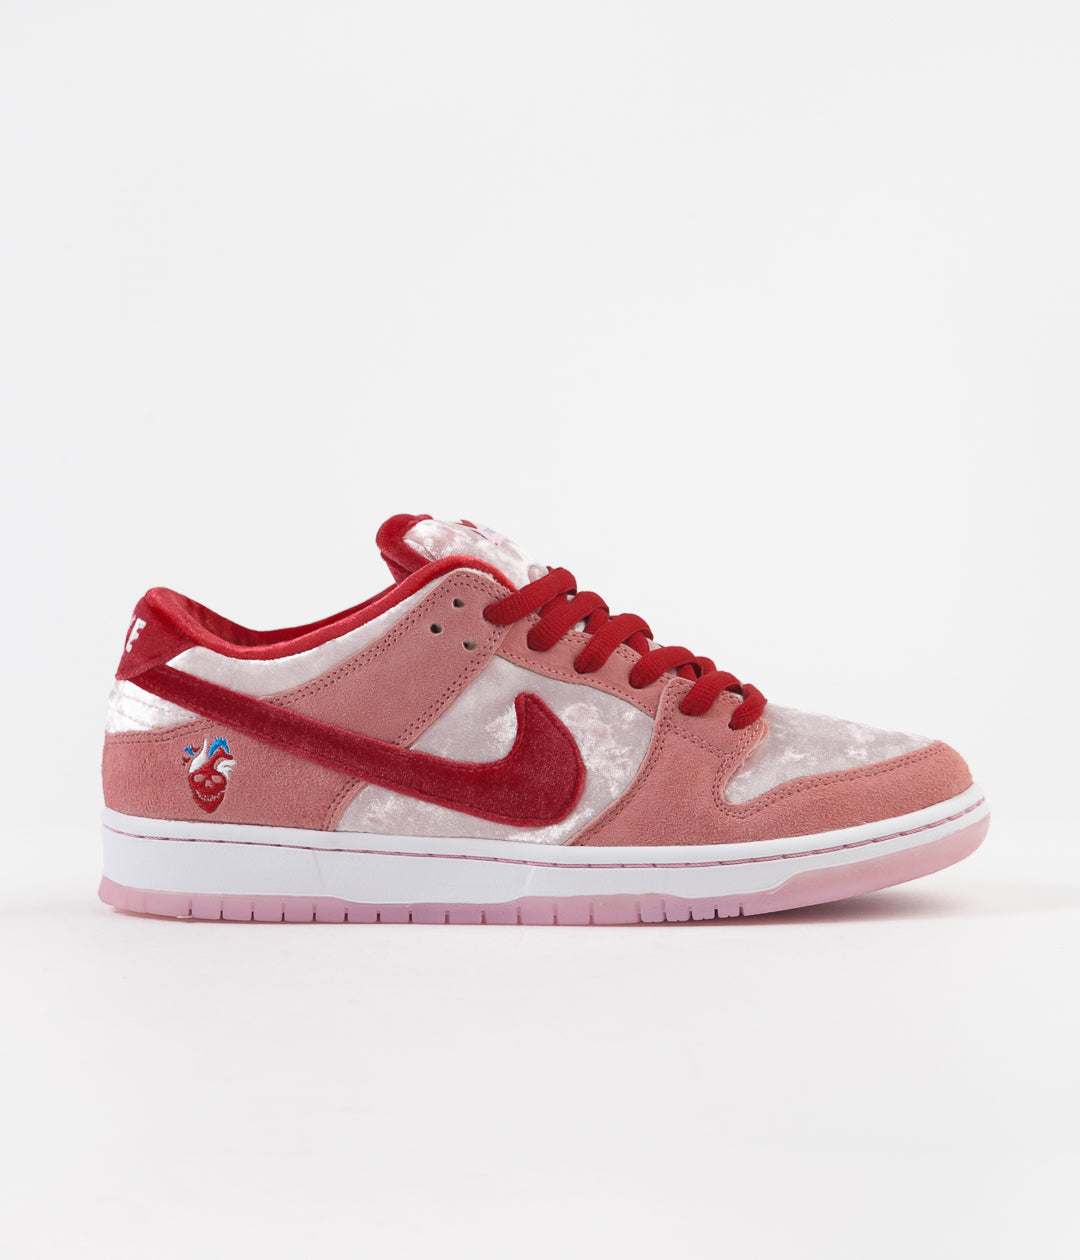 Nike SB 'Strangelove' Dunk Low Pro Shoes - Bright Melon / Gym Red - Medium Soft Pink